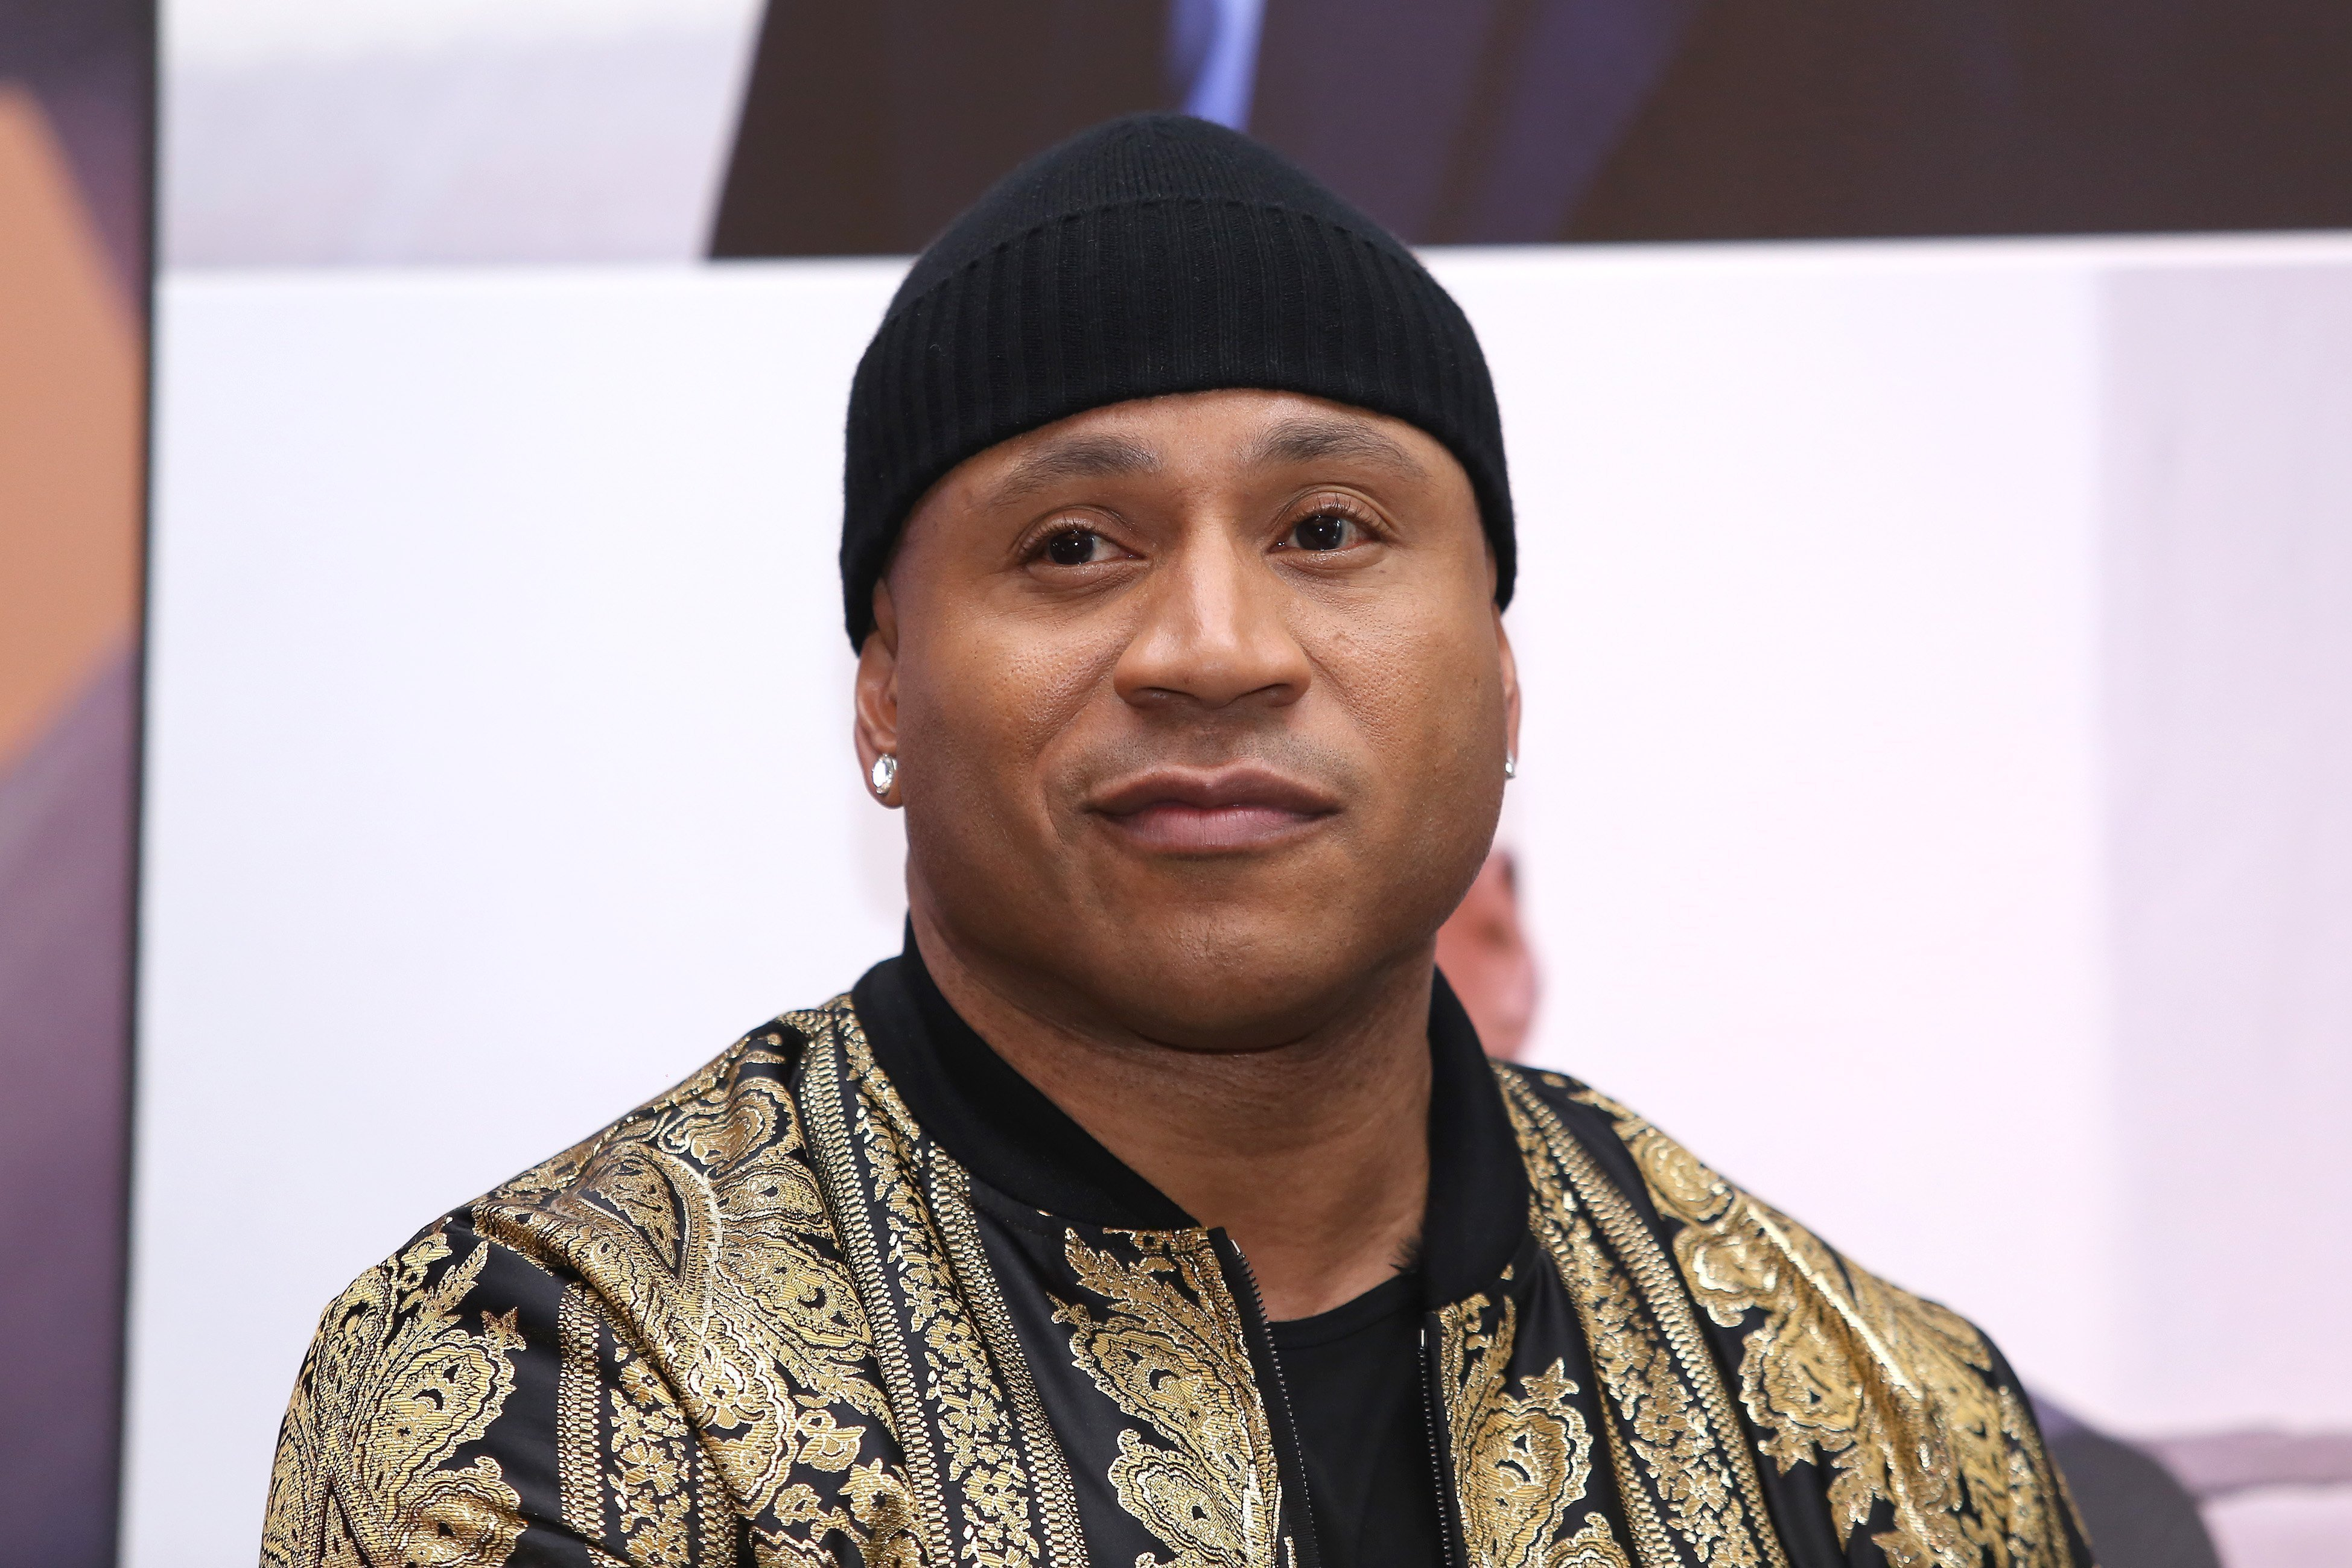 LL Cool J during a press conference at Hotel St. Regis on June 5, 2019 | Photo: Getty Images